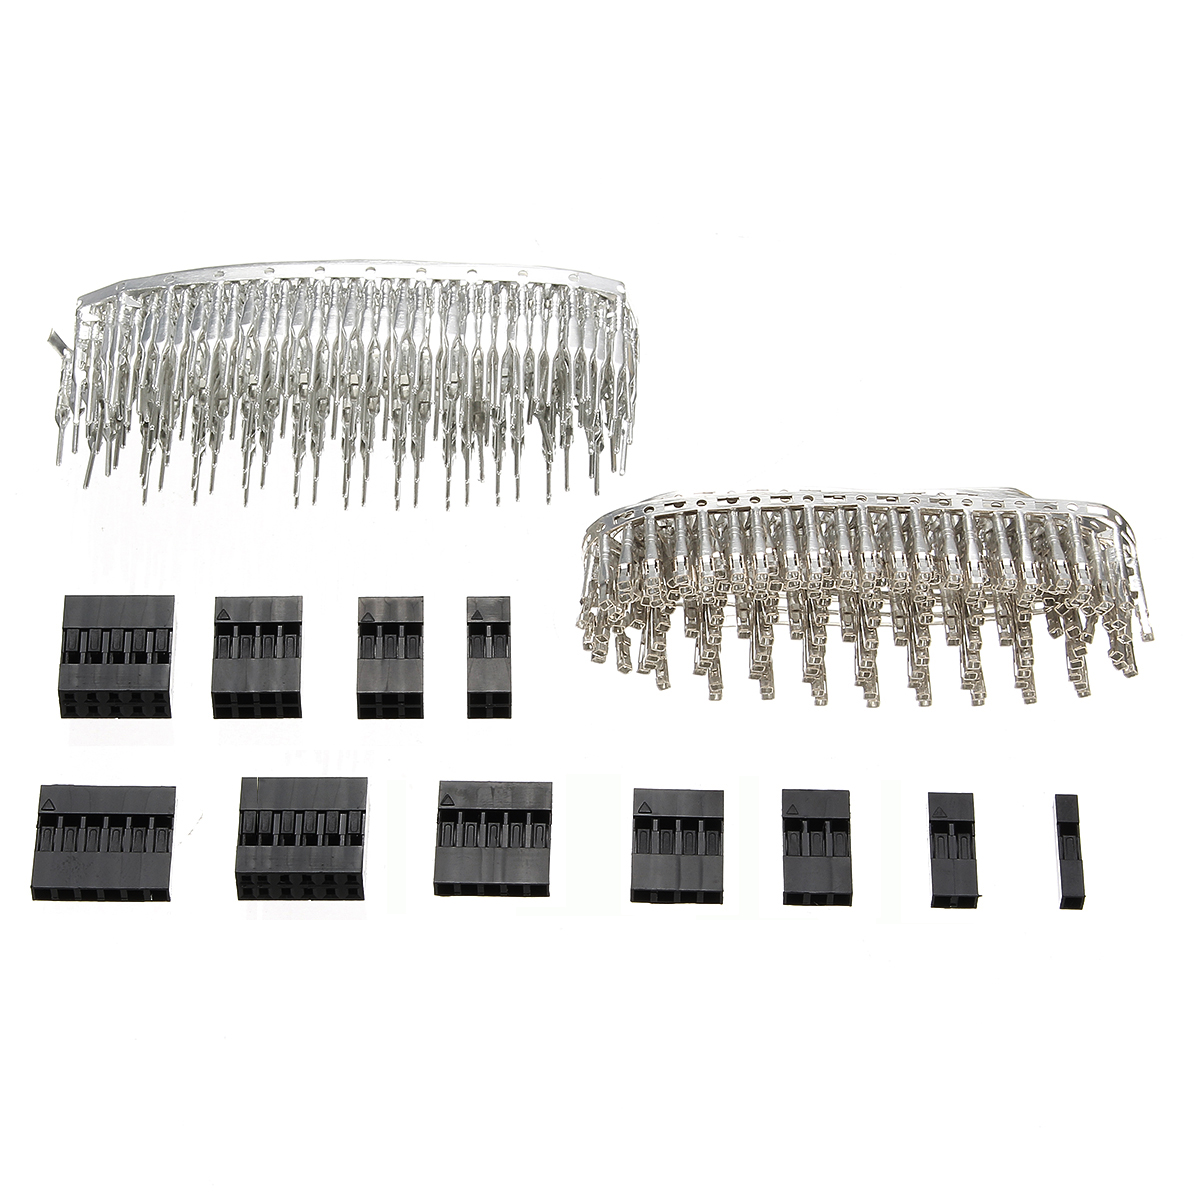 Excellway® TC10 620pcs Wire Jumper Pin Header Connector Housing Kit For Dupont and Crimp Pins